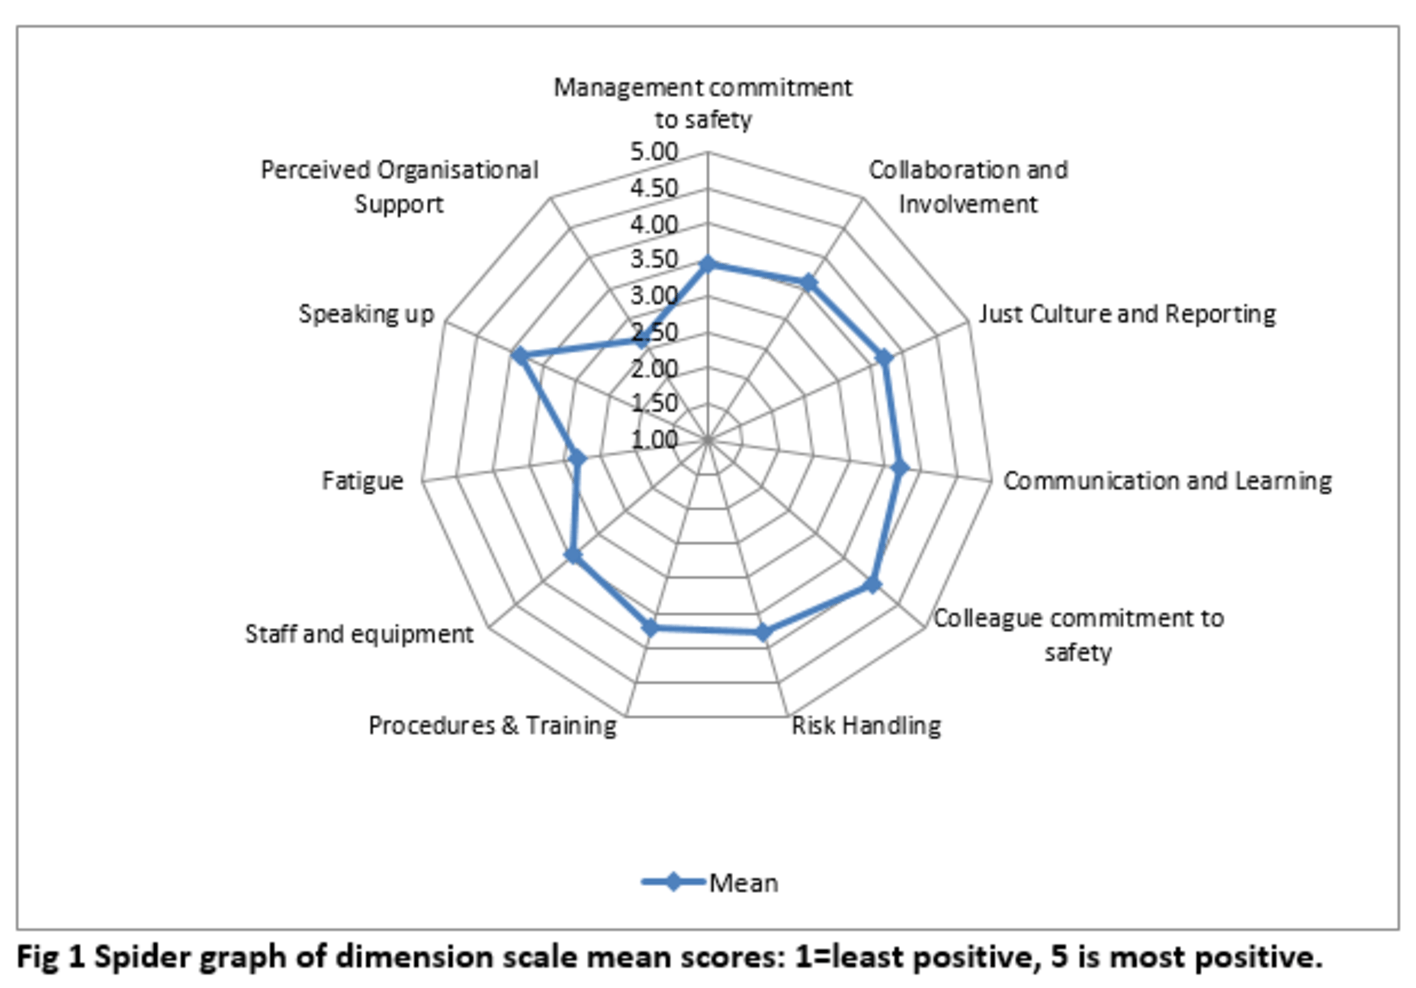 How pilots feel about key aspects of their work and conditions.